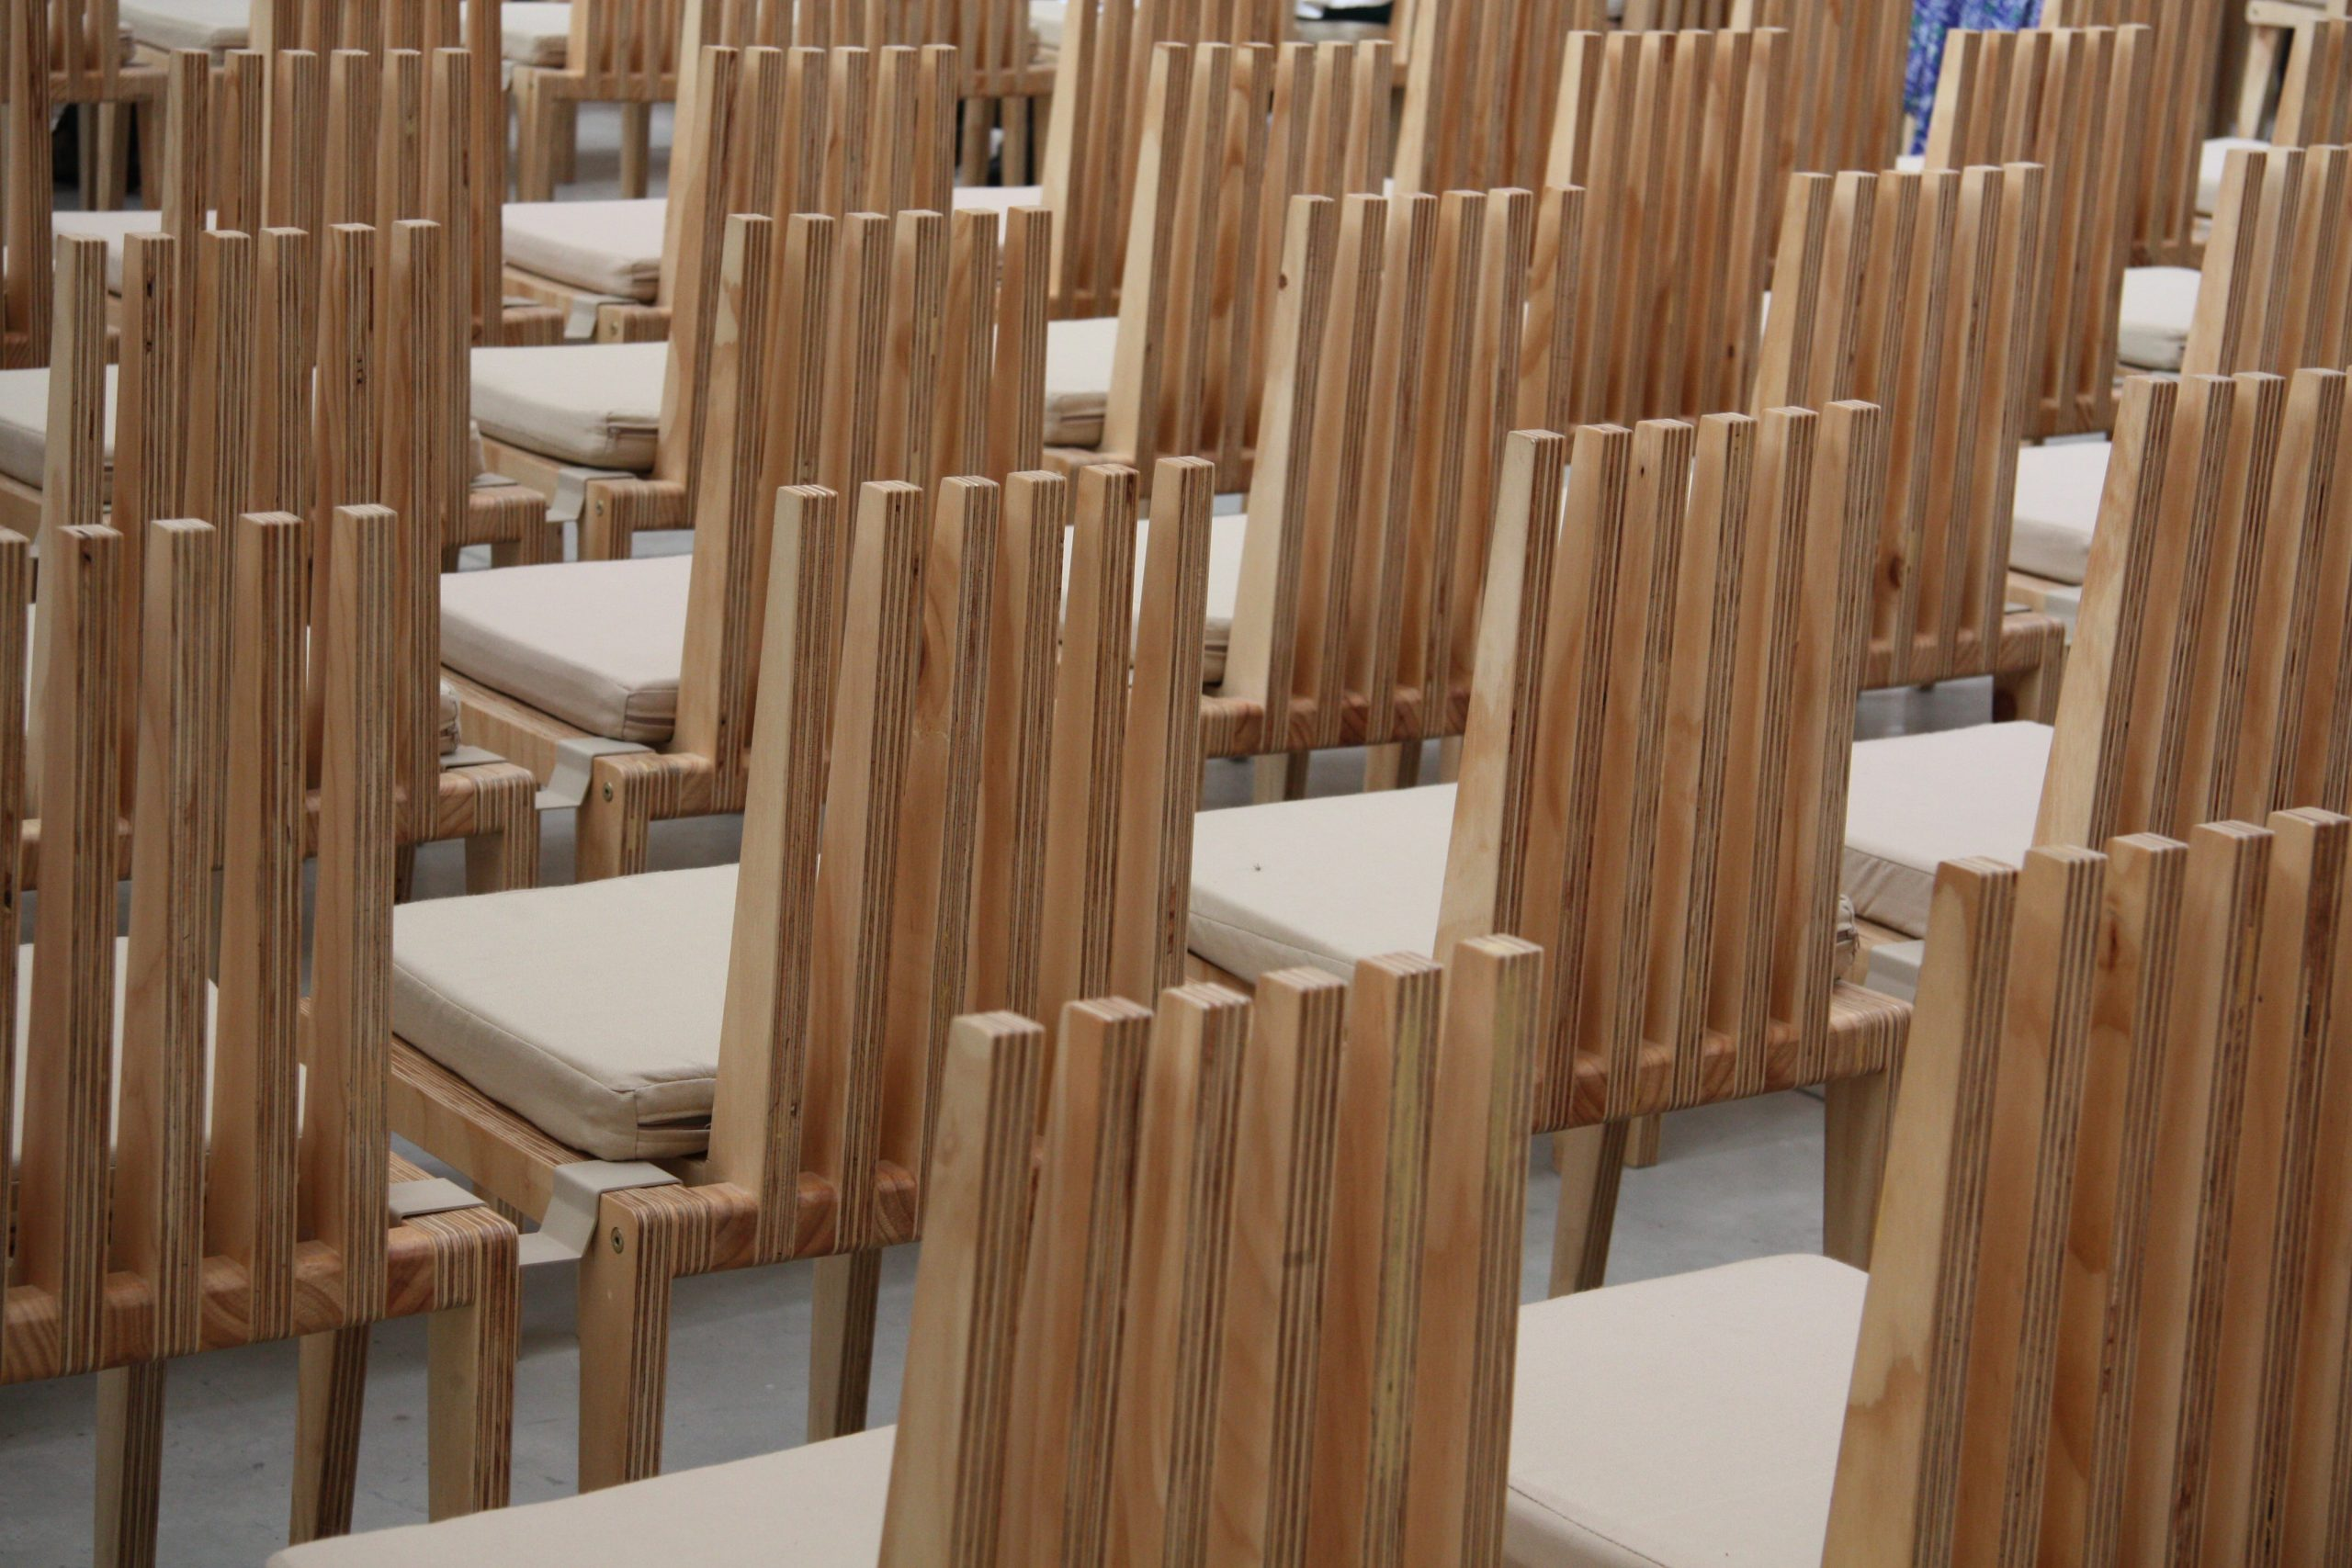 Sustainable design step 5, plywood chairs arranged in rows